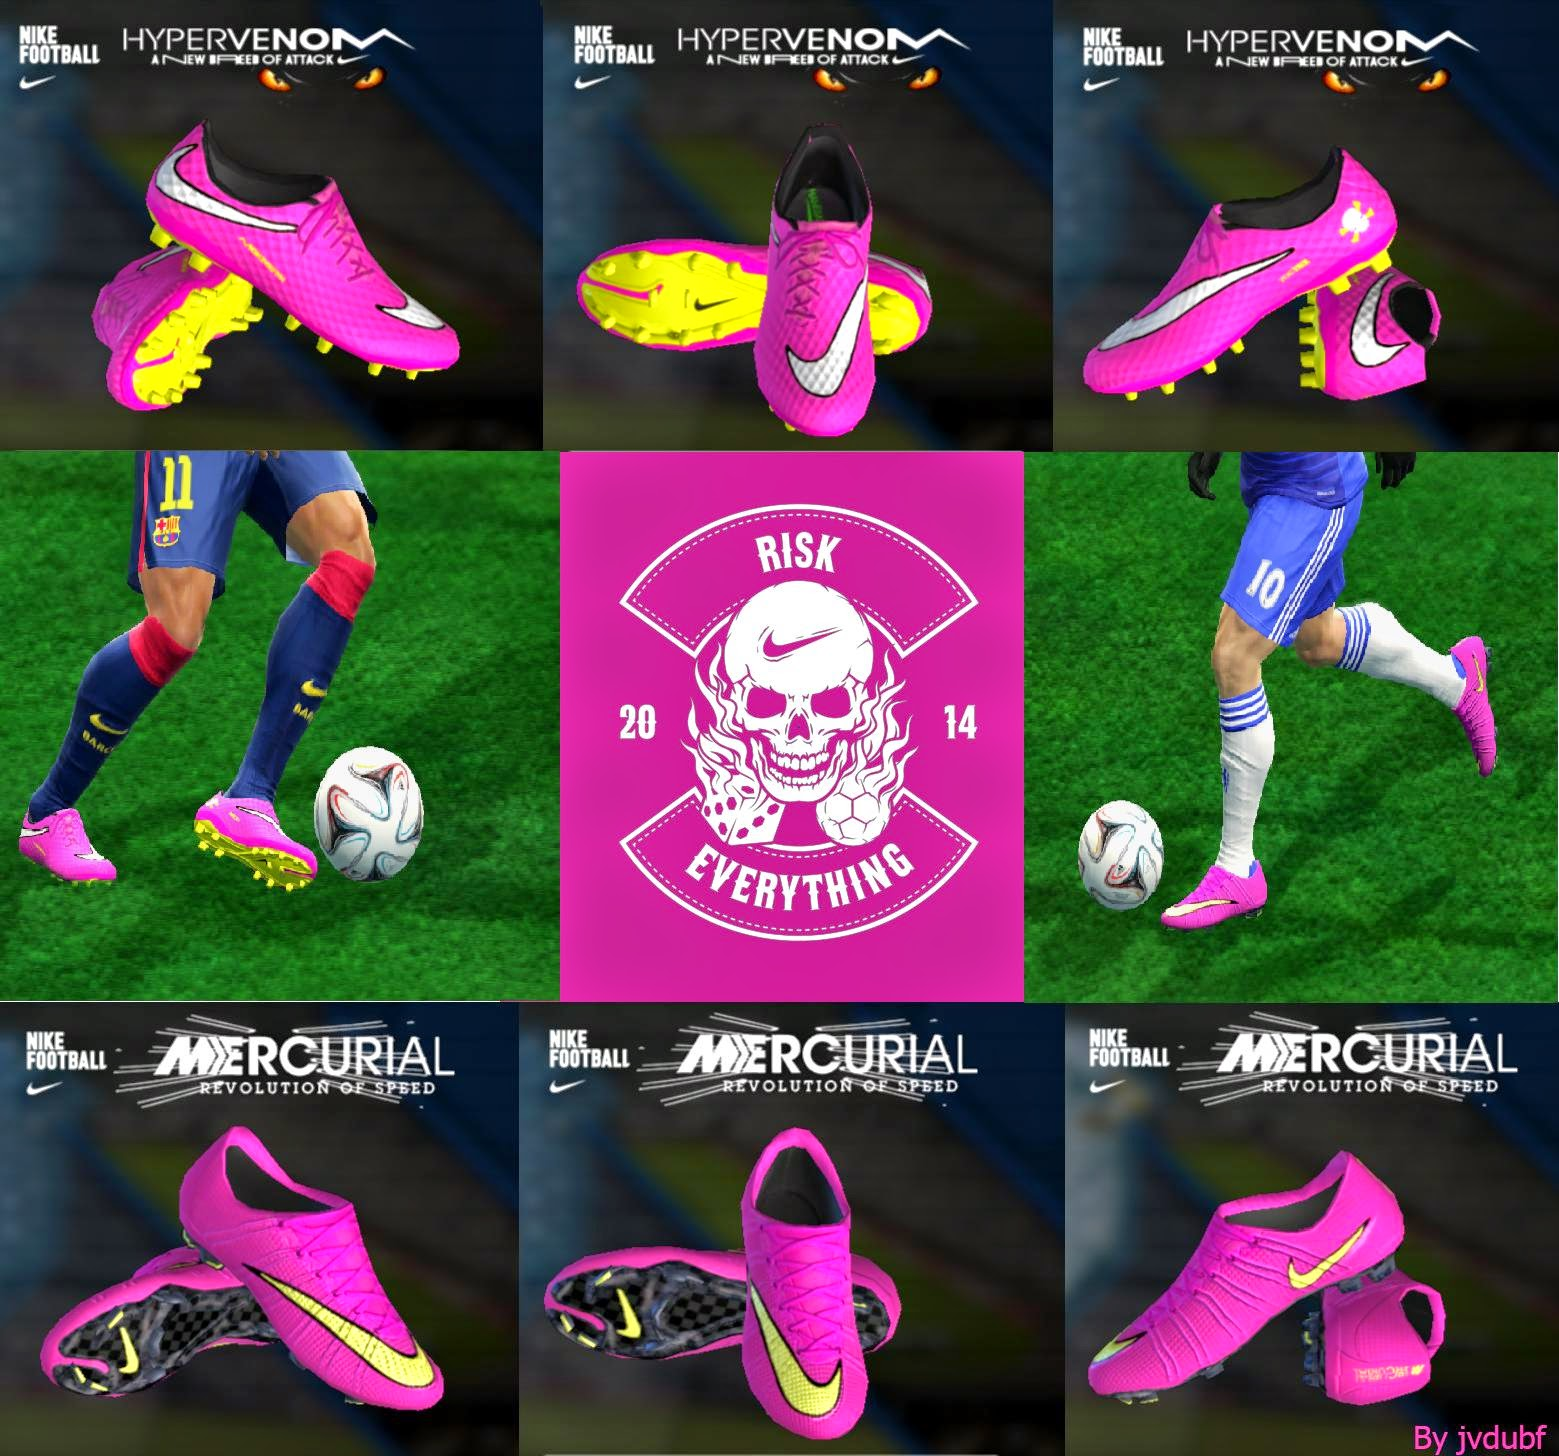 PES 2013 Mini pack nike mercurial Superfly and Hypervenom Pink by jvdubf